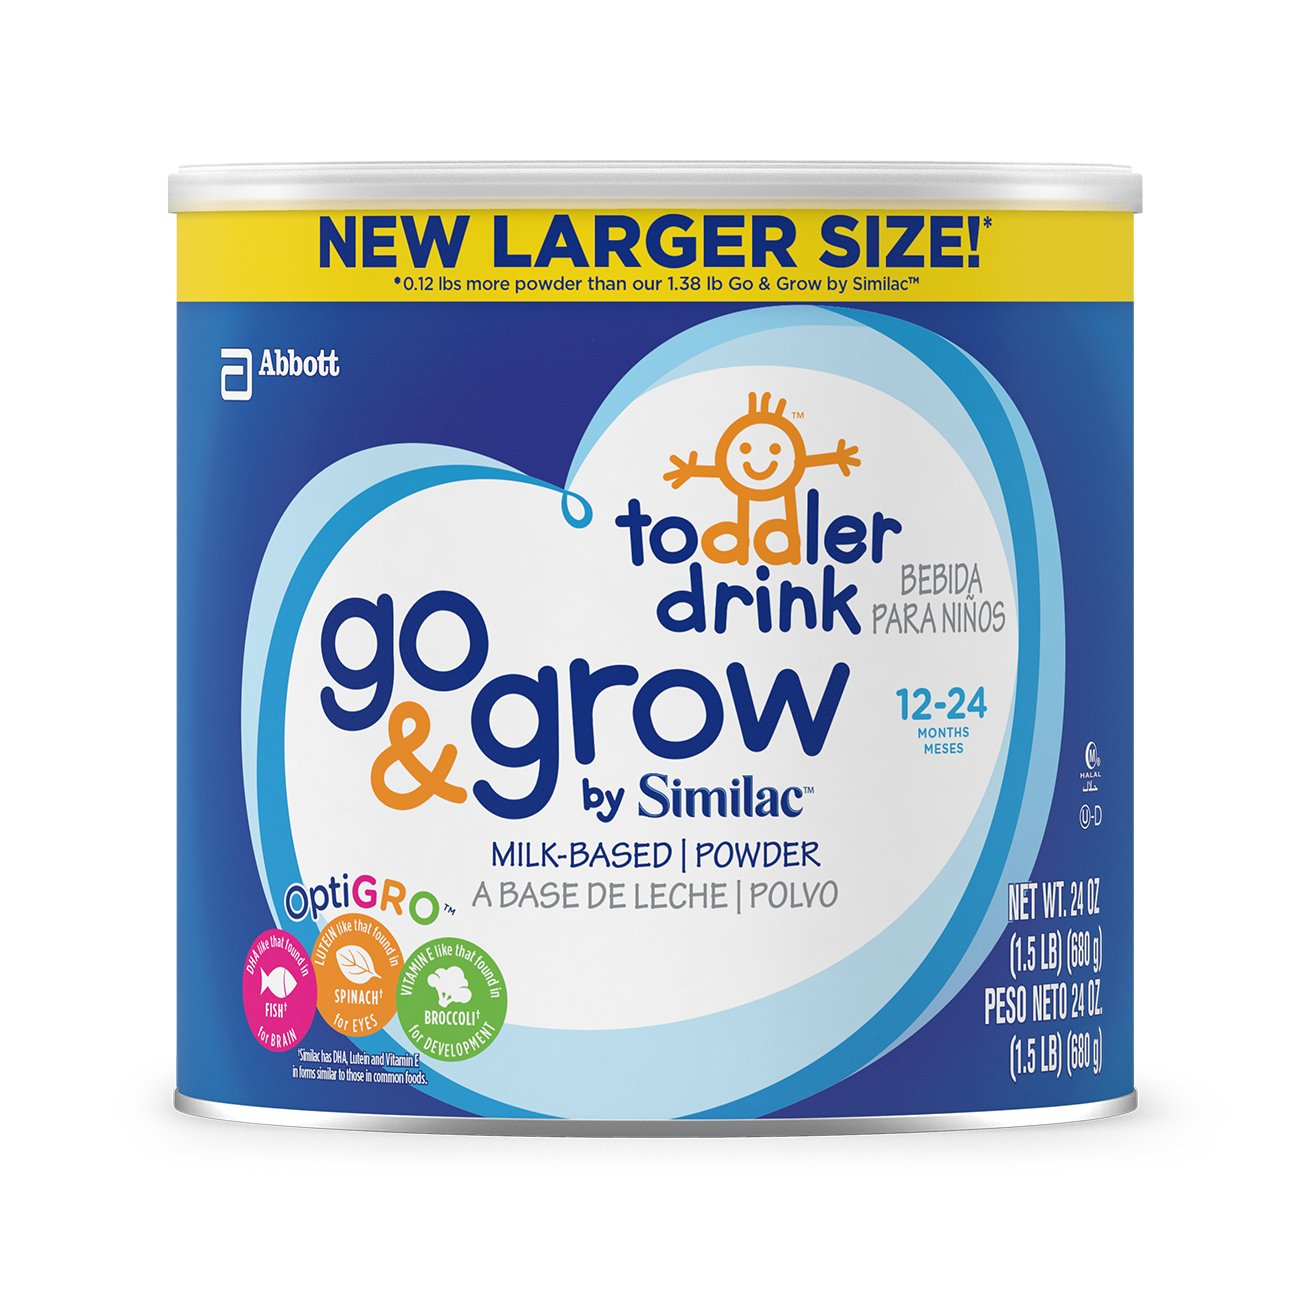 Go & Grow By Similac Milk Based Toddler Drink, Large Size Powder, 24 ounces (Pack of 6) by Similac (Image #1)